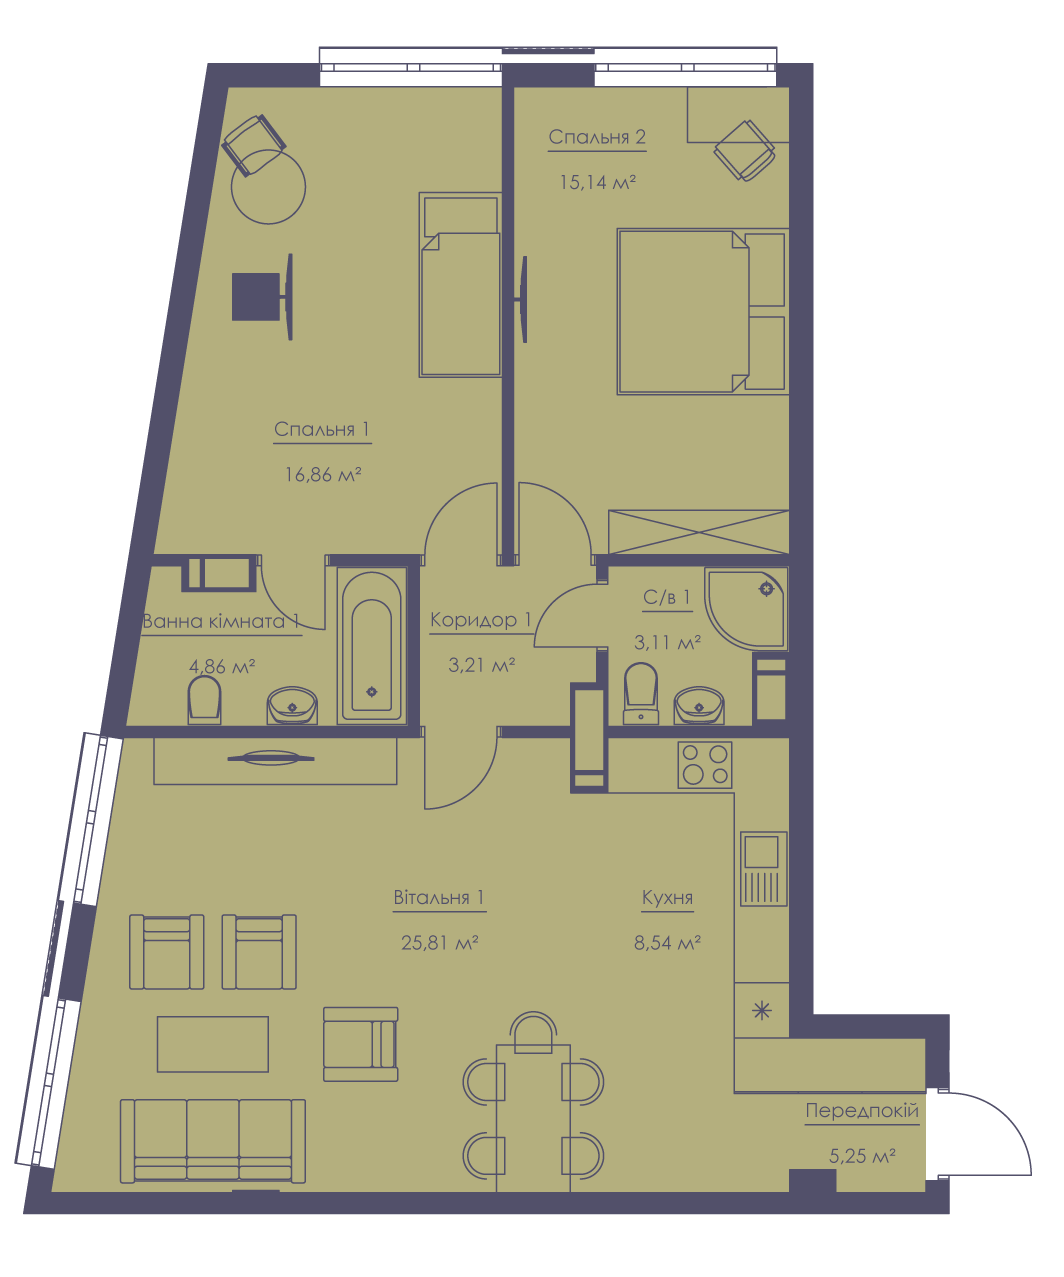 Apartment layout KV_52_3n_1_1_7-1